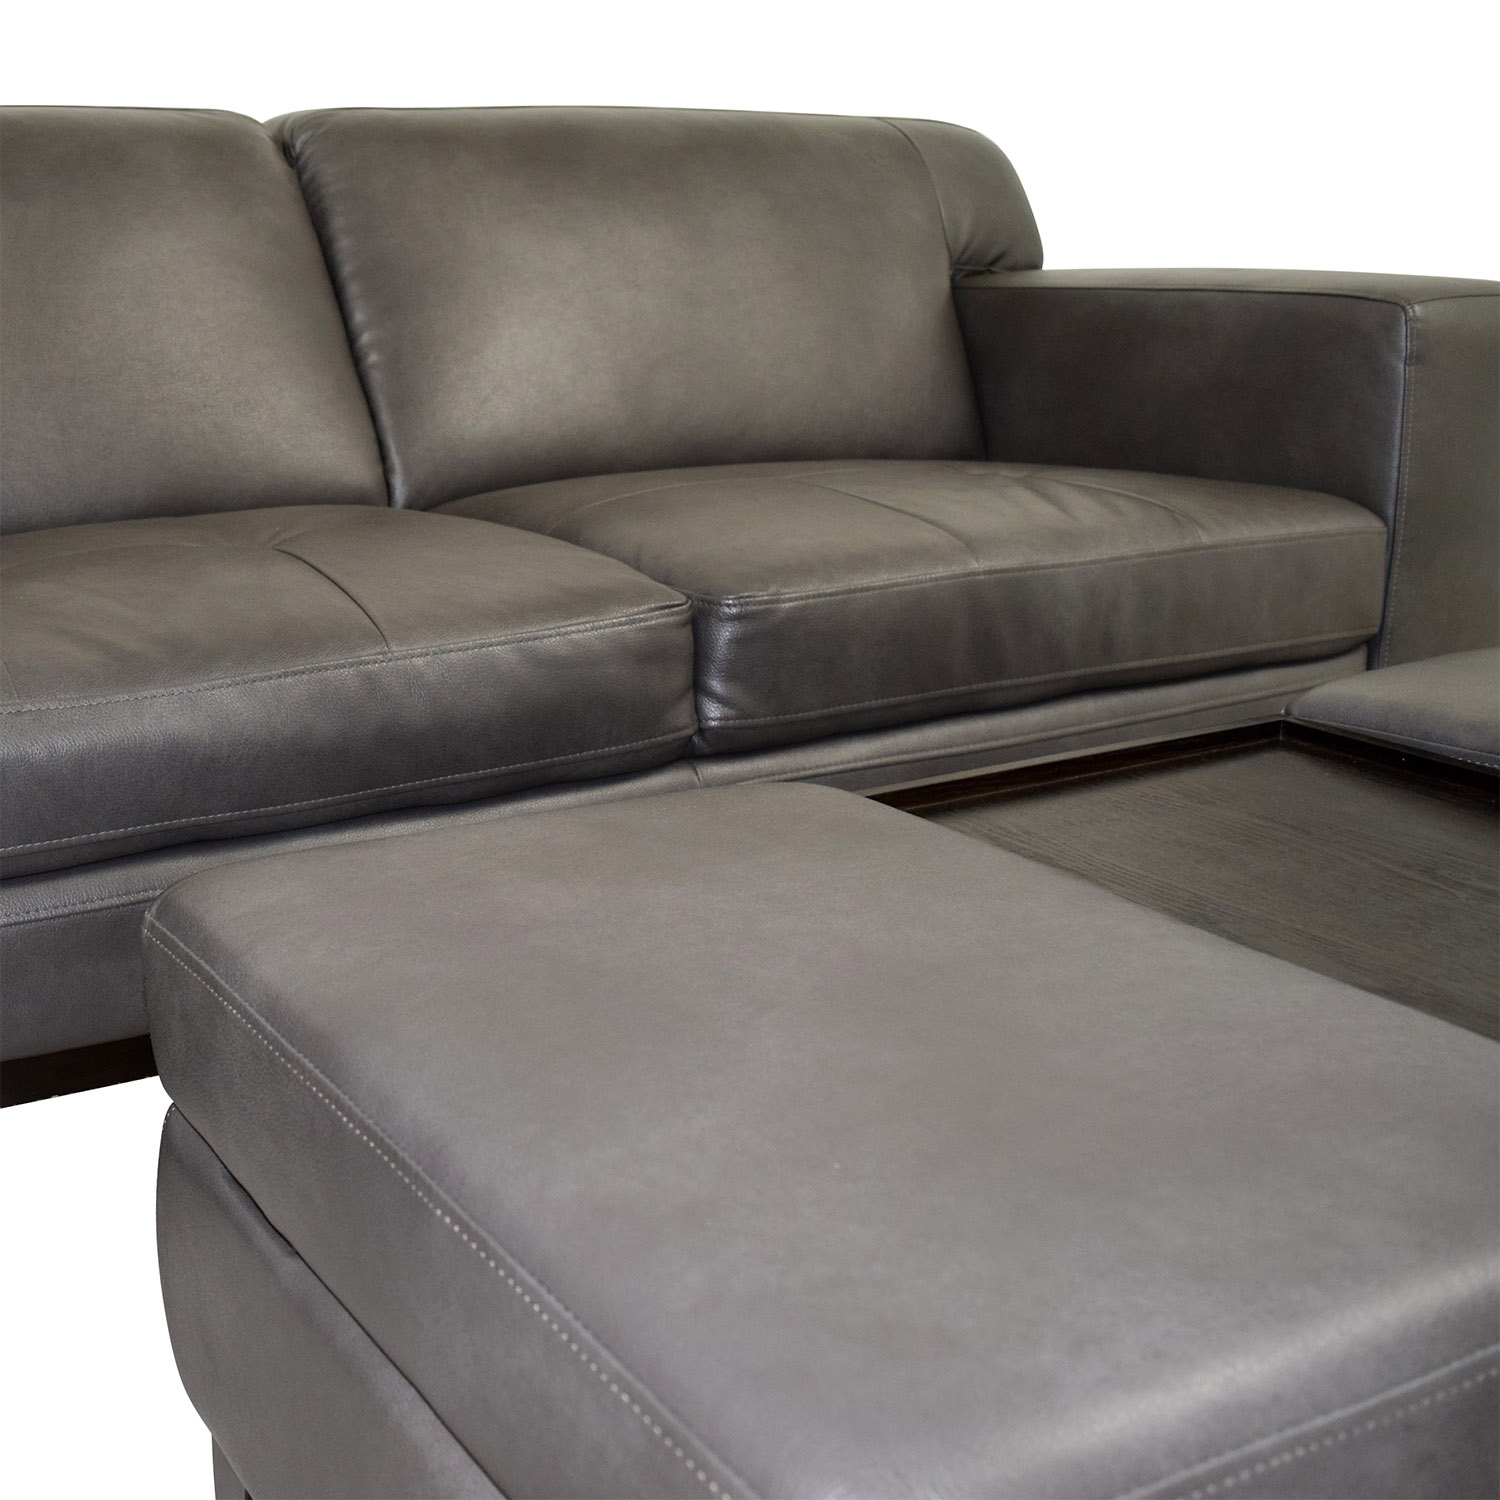 Raymour & Flanigan Raymour & Flanigan Grey Leather Couch with Storage Ottoman second hand